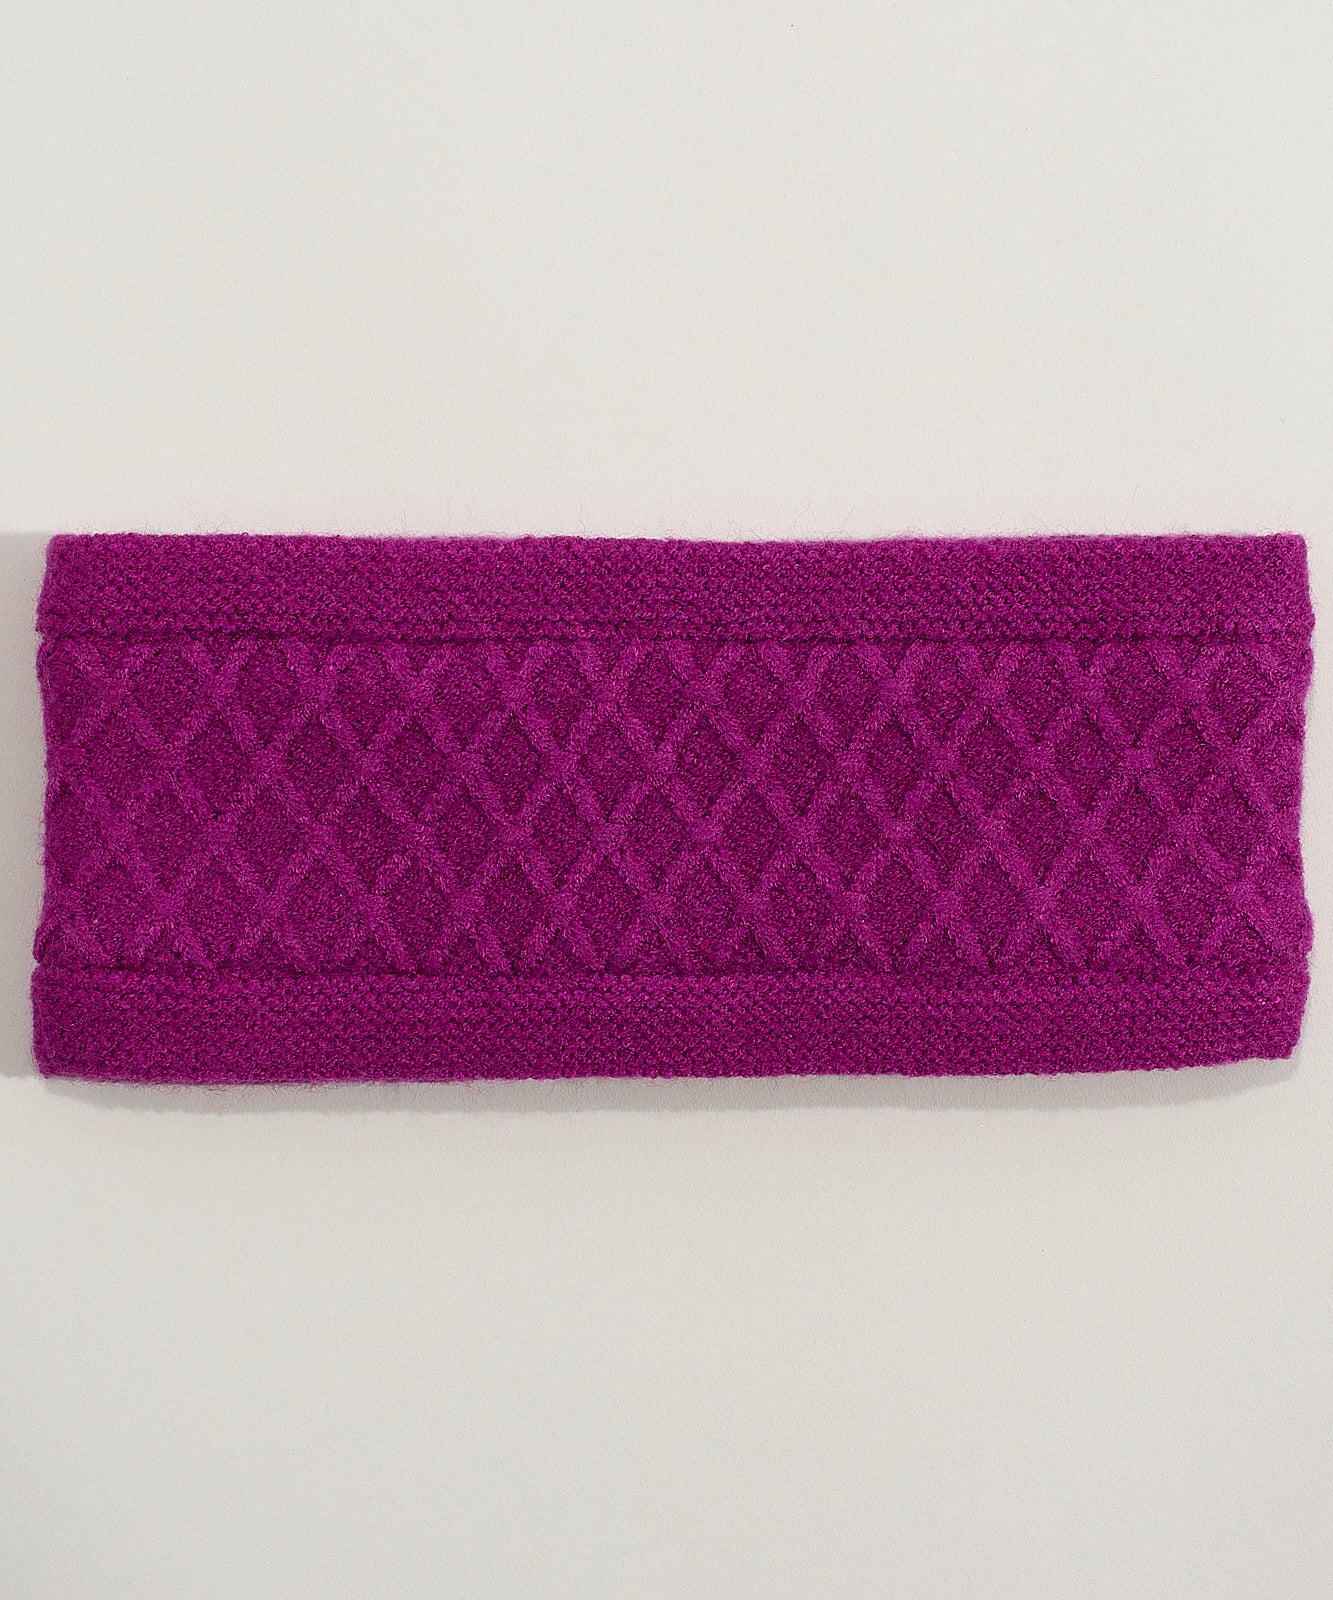 Winter Viola Dillard's - Diamond Cable Headband